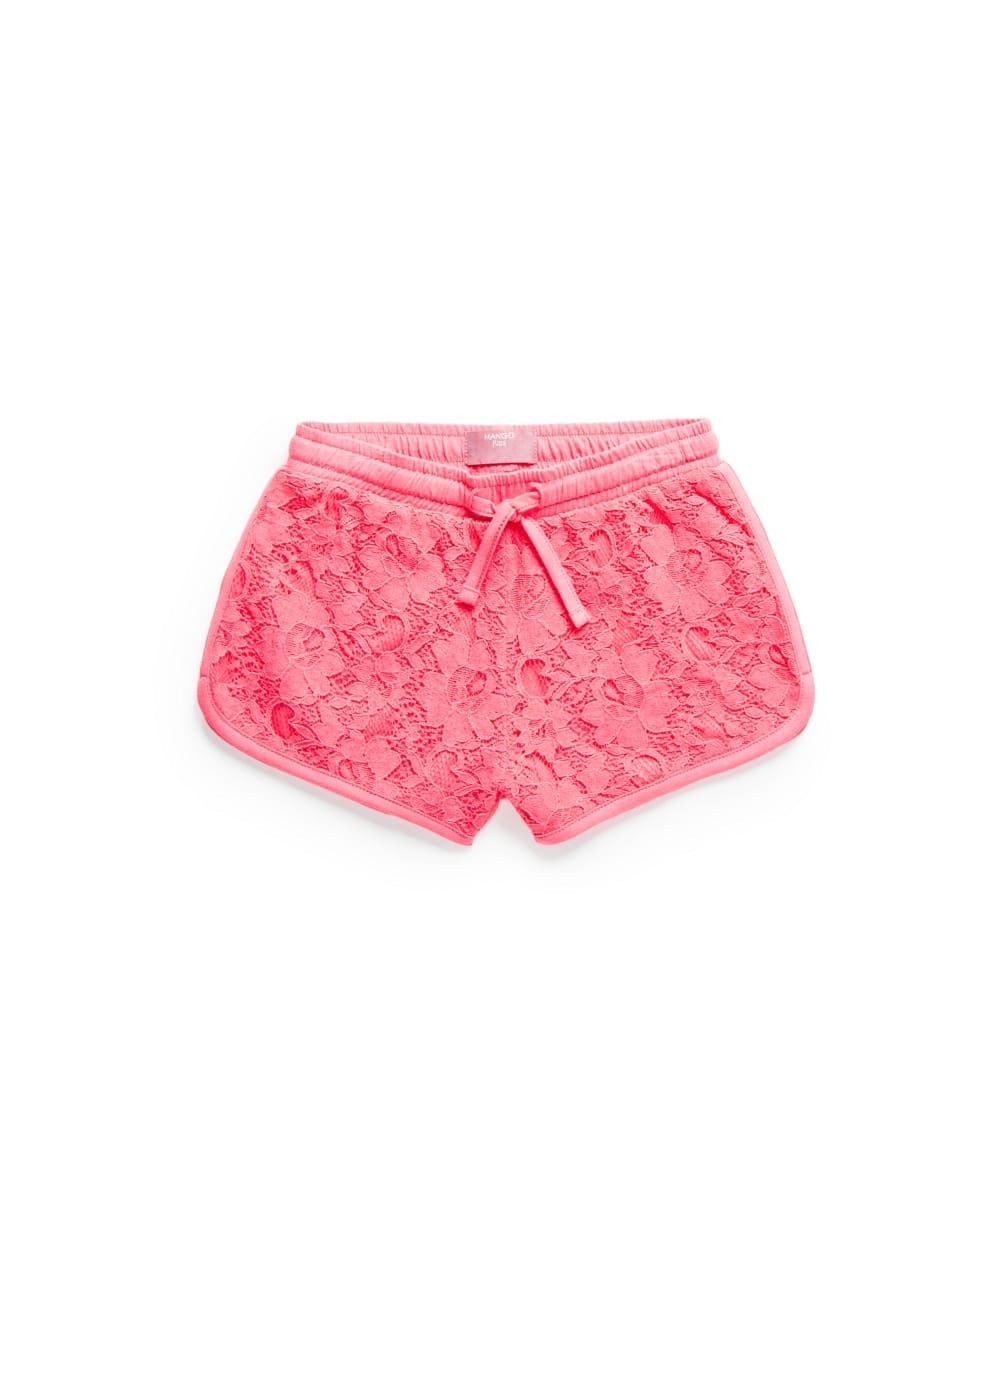 Short de jogging brodé